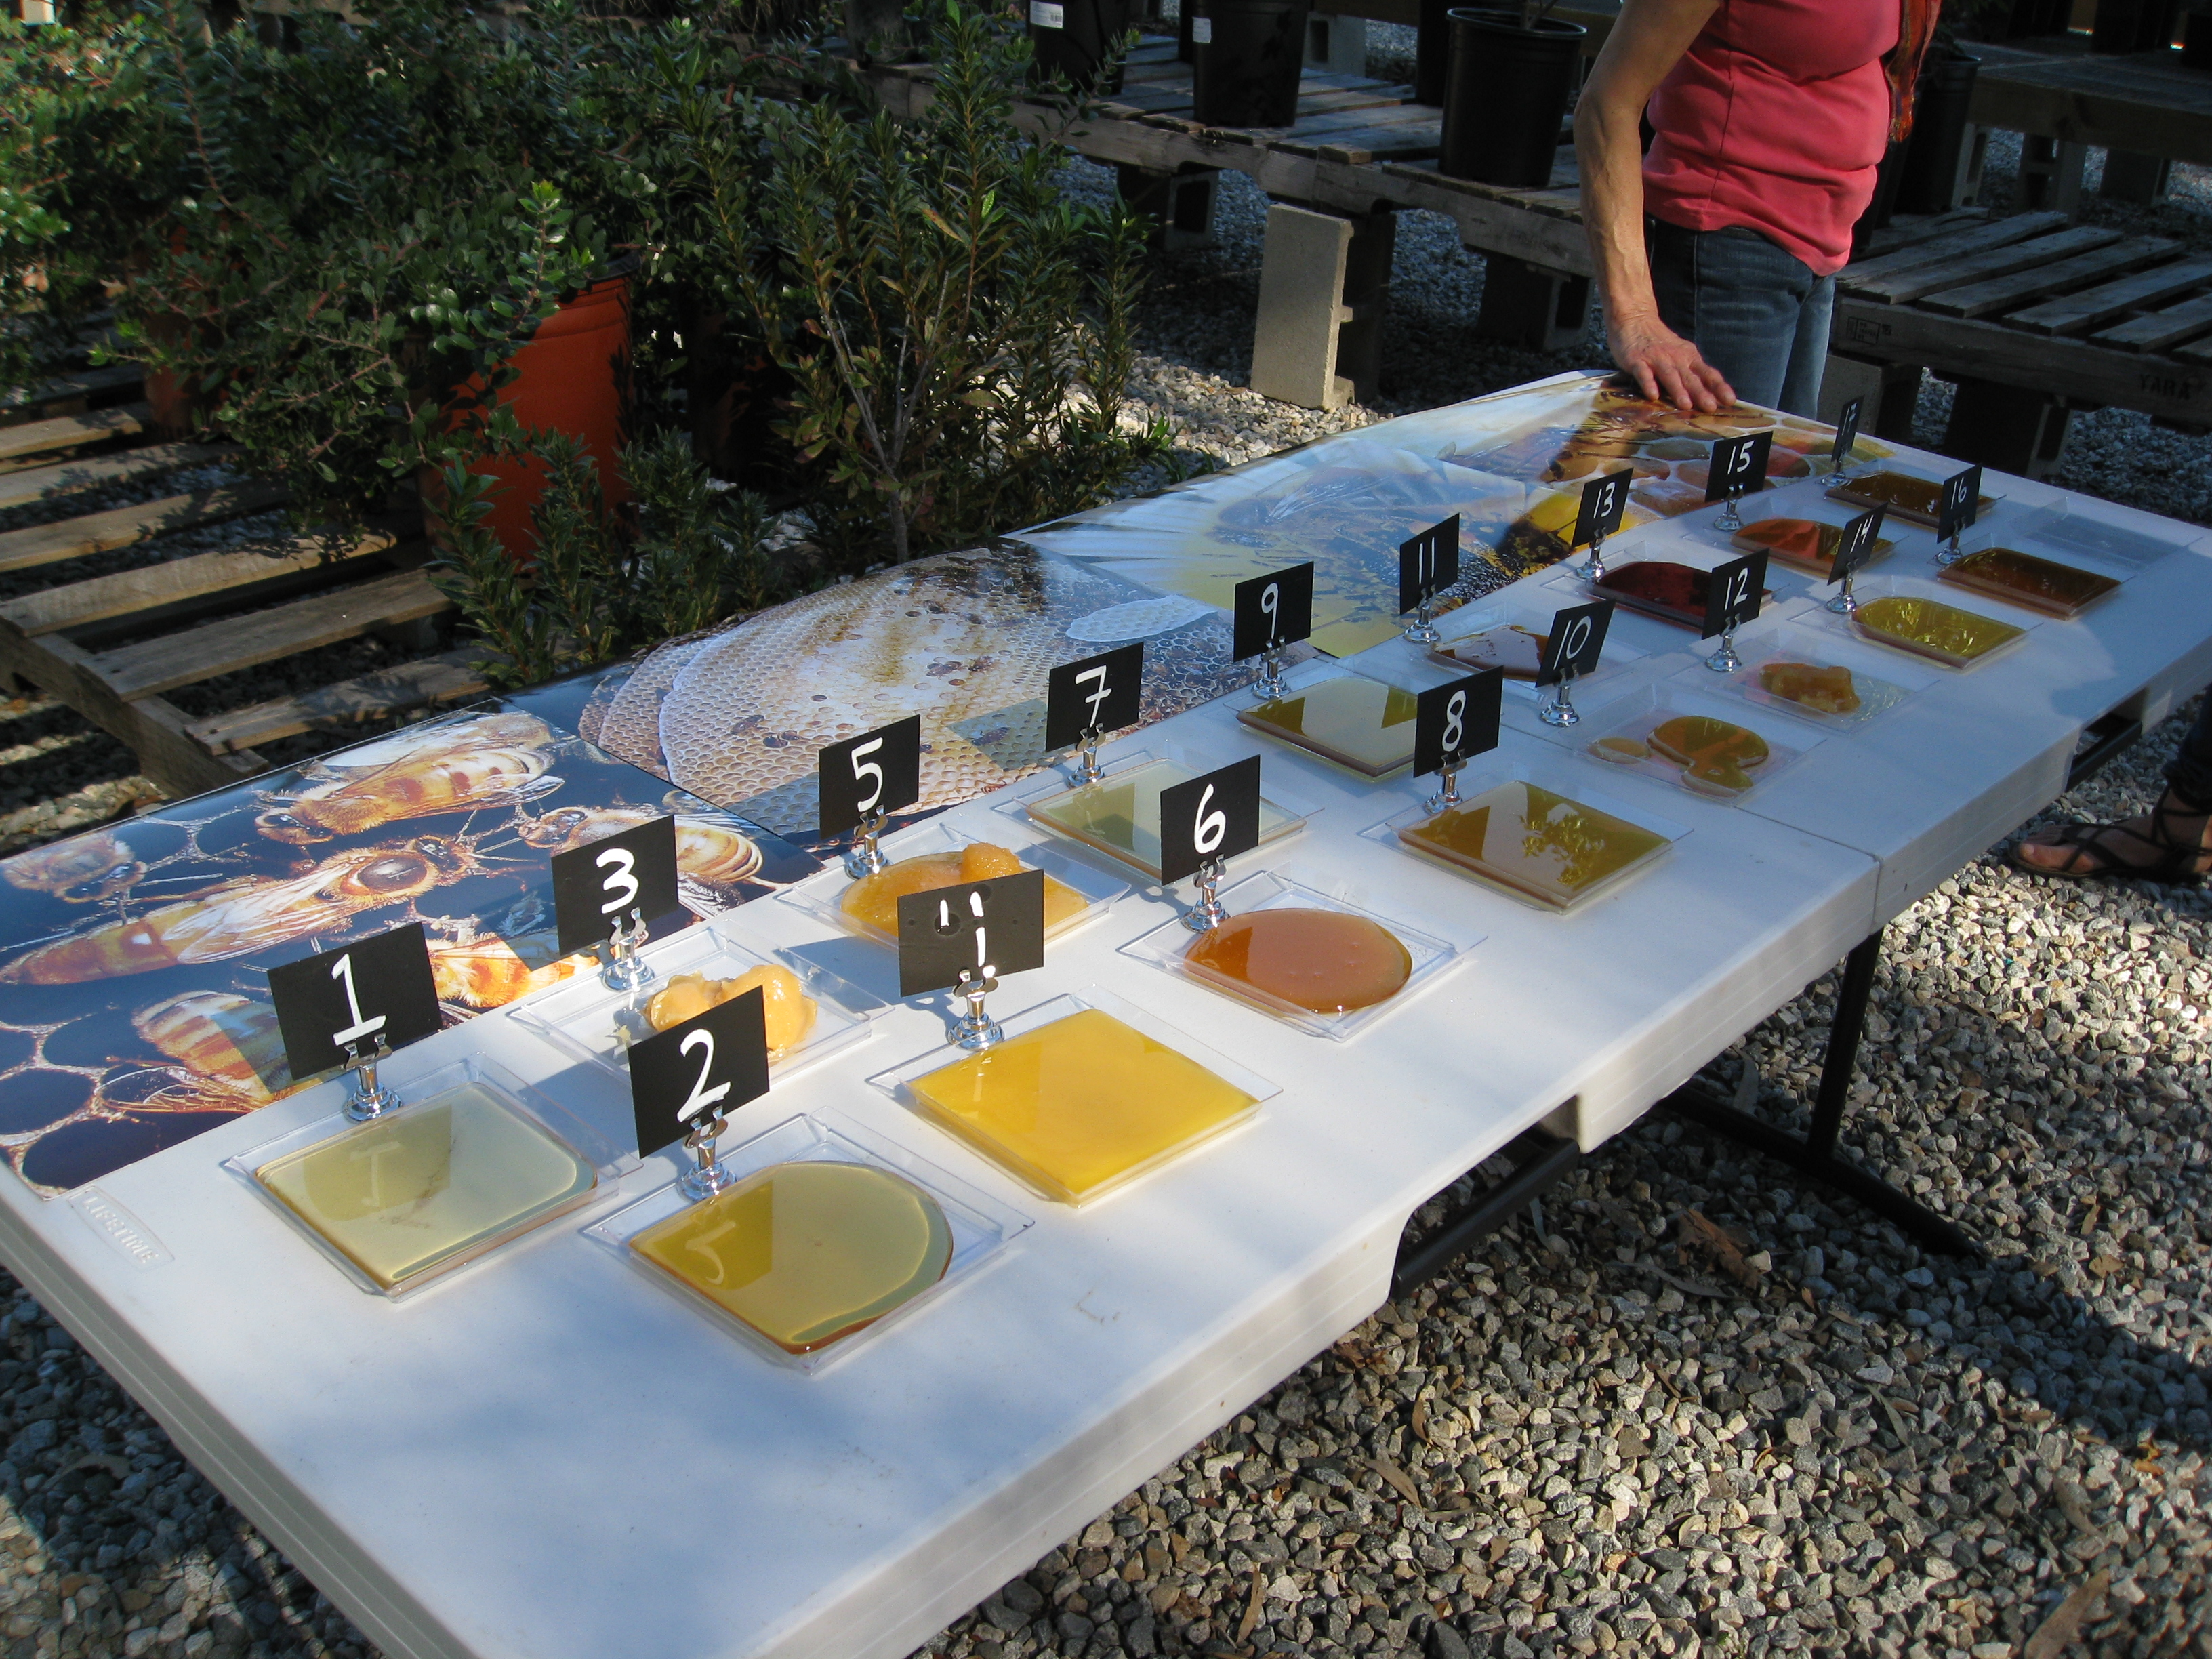 17 honey samples from around the world, ready for tasting.